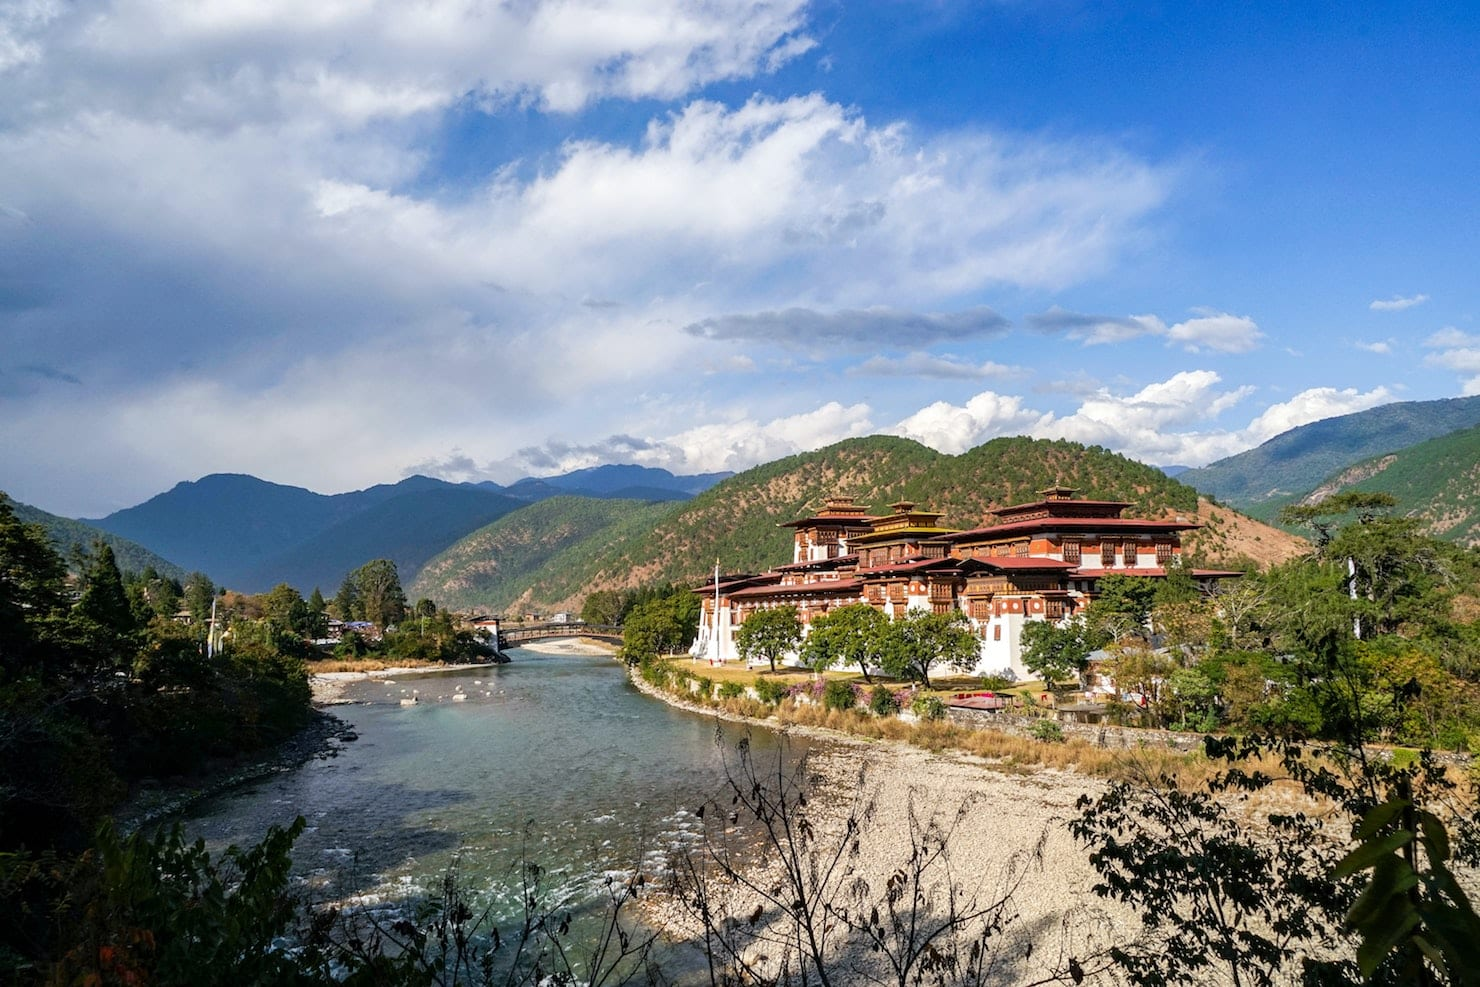 A sprawling scene of tranquility at Paro Dzong, Bhutan, a must-see sight on a Bhutan trip